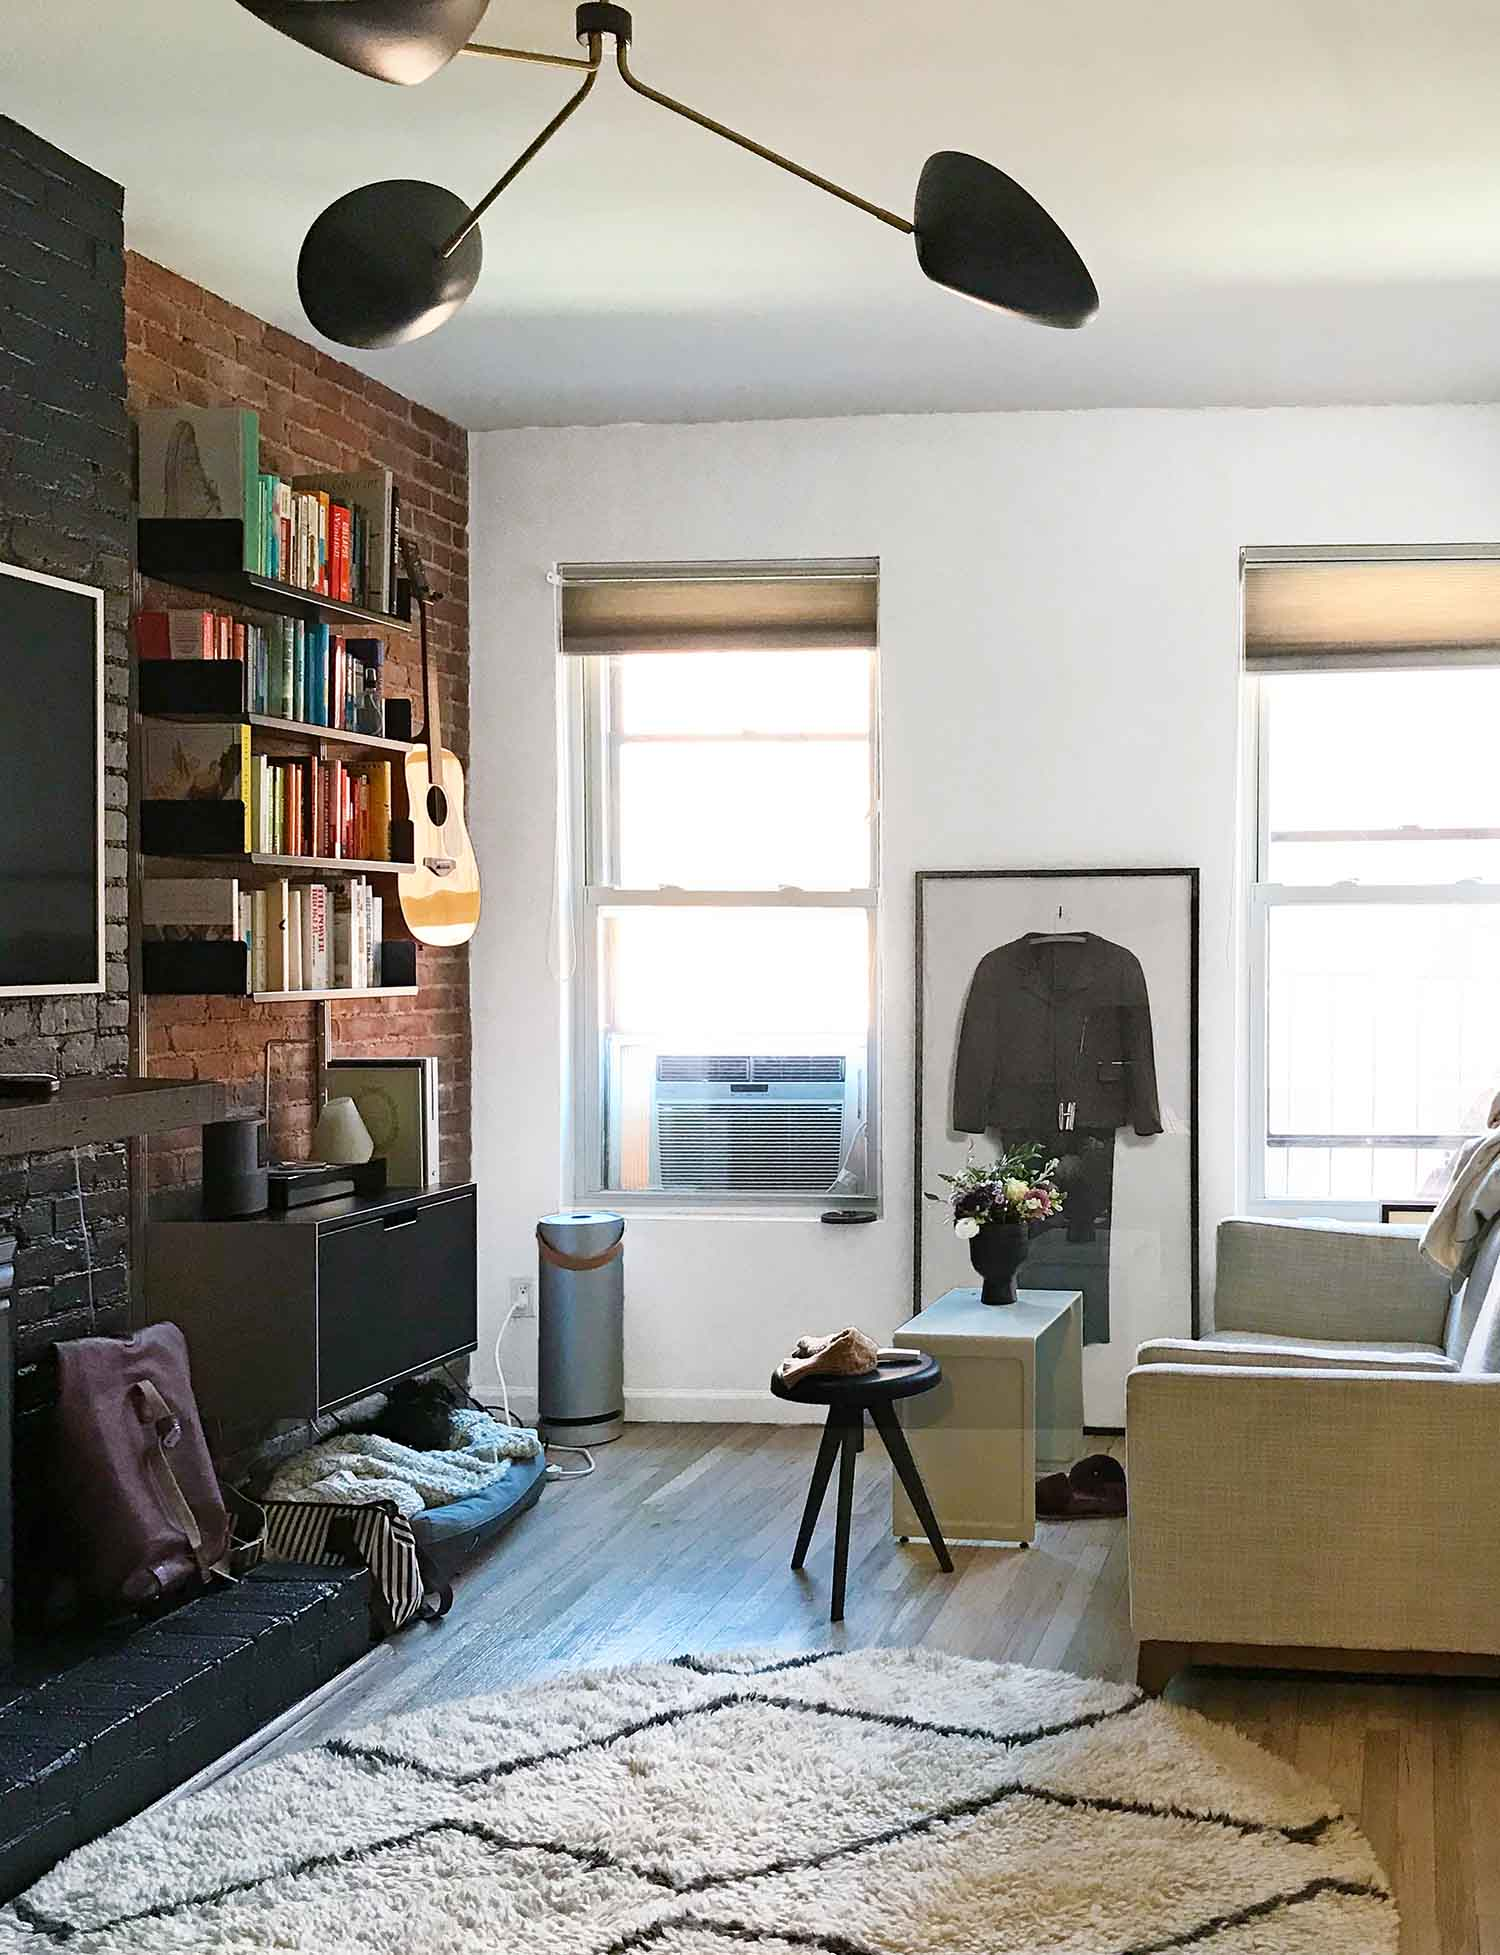 If you're painting a small space, check out these 5 tips for painting a small, city apartment from an NYC Style Editor!